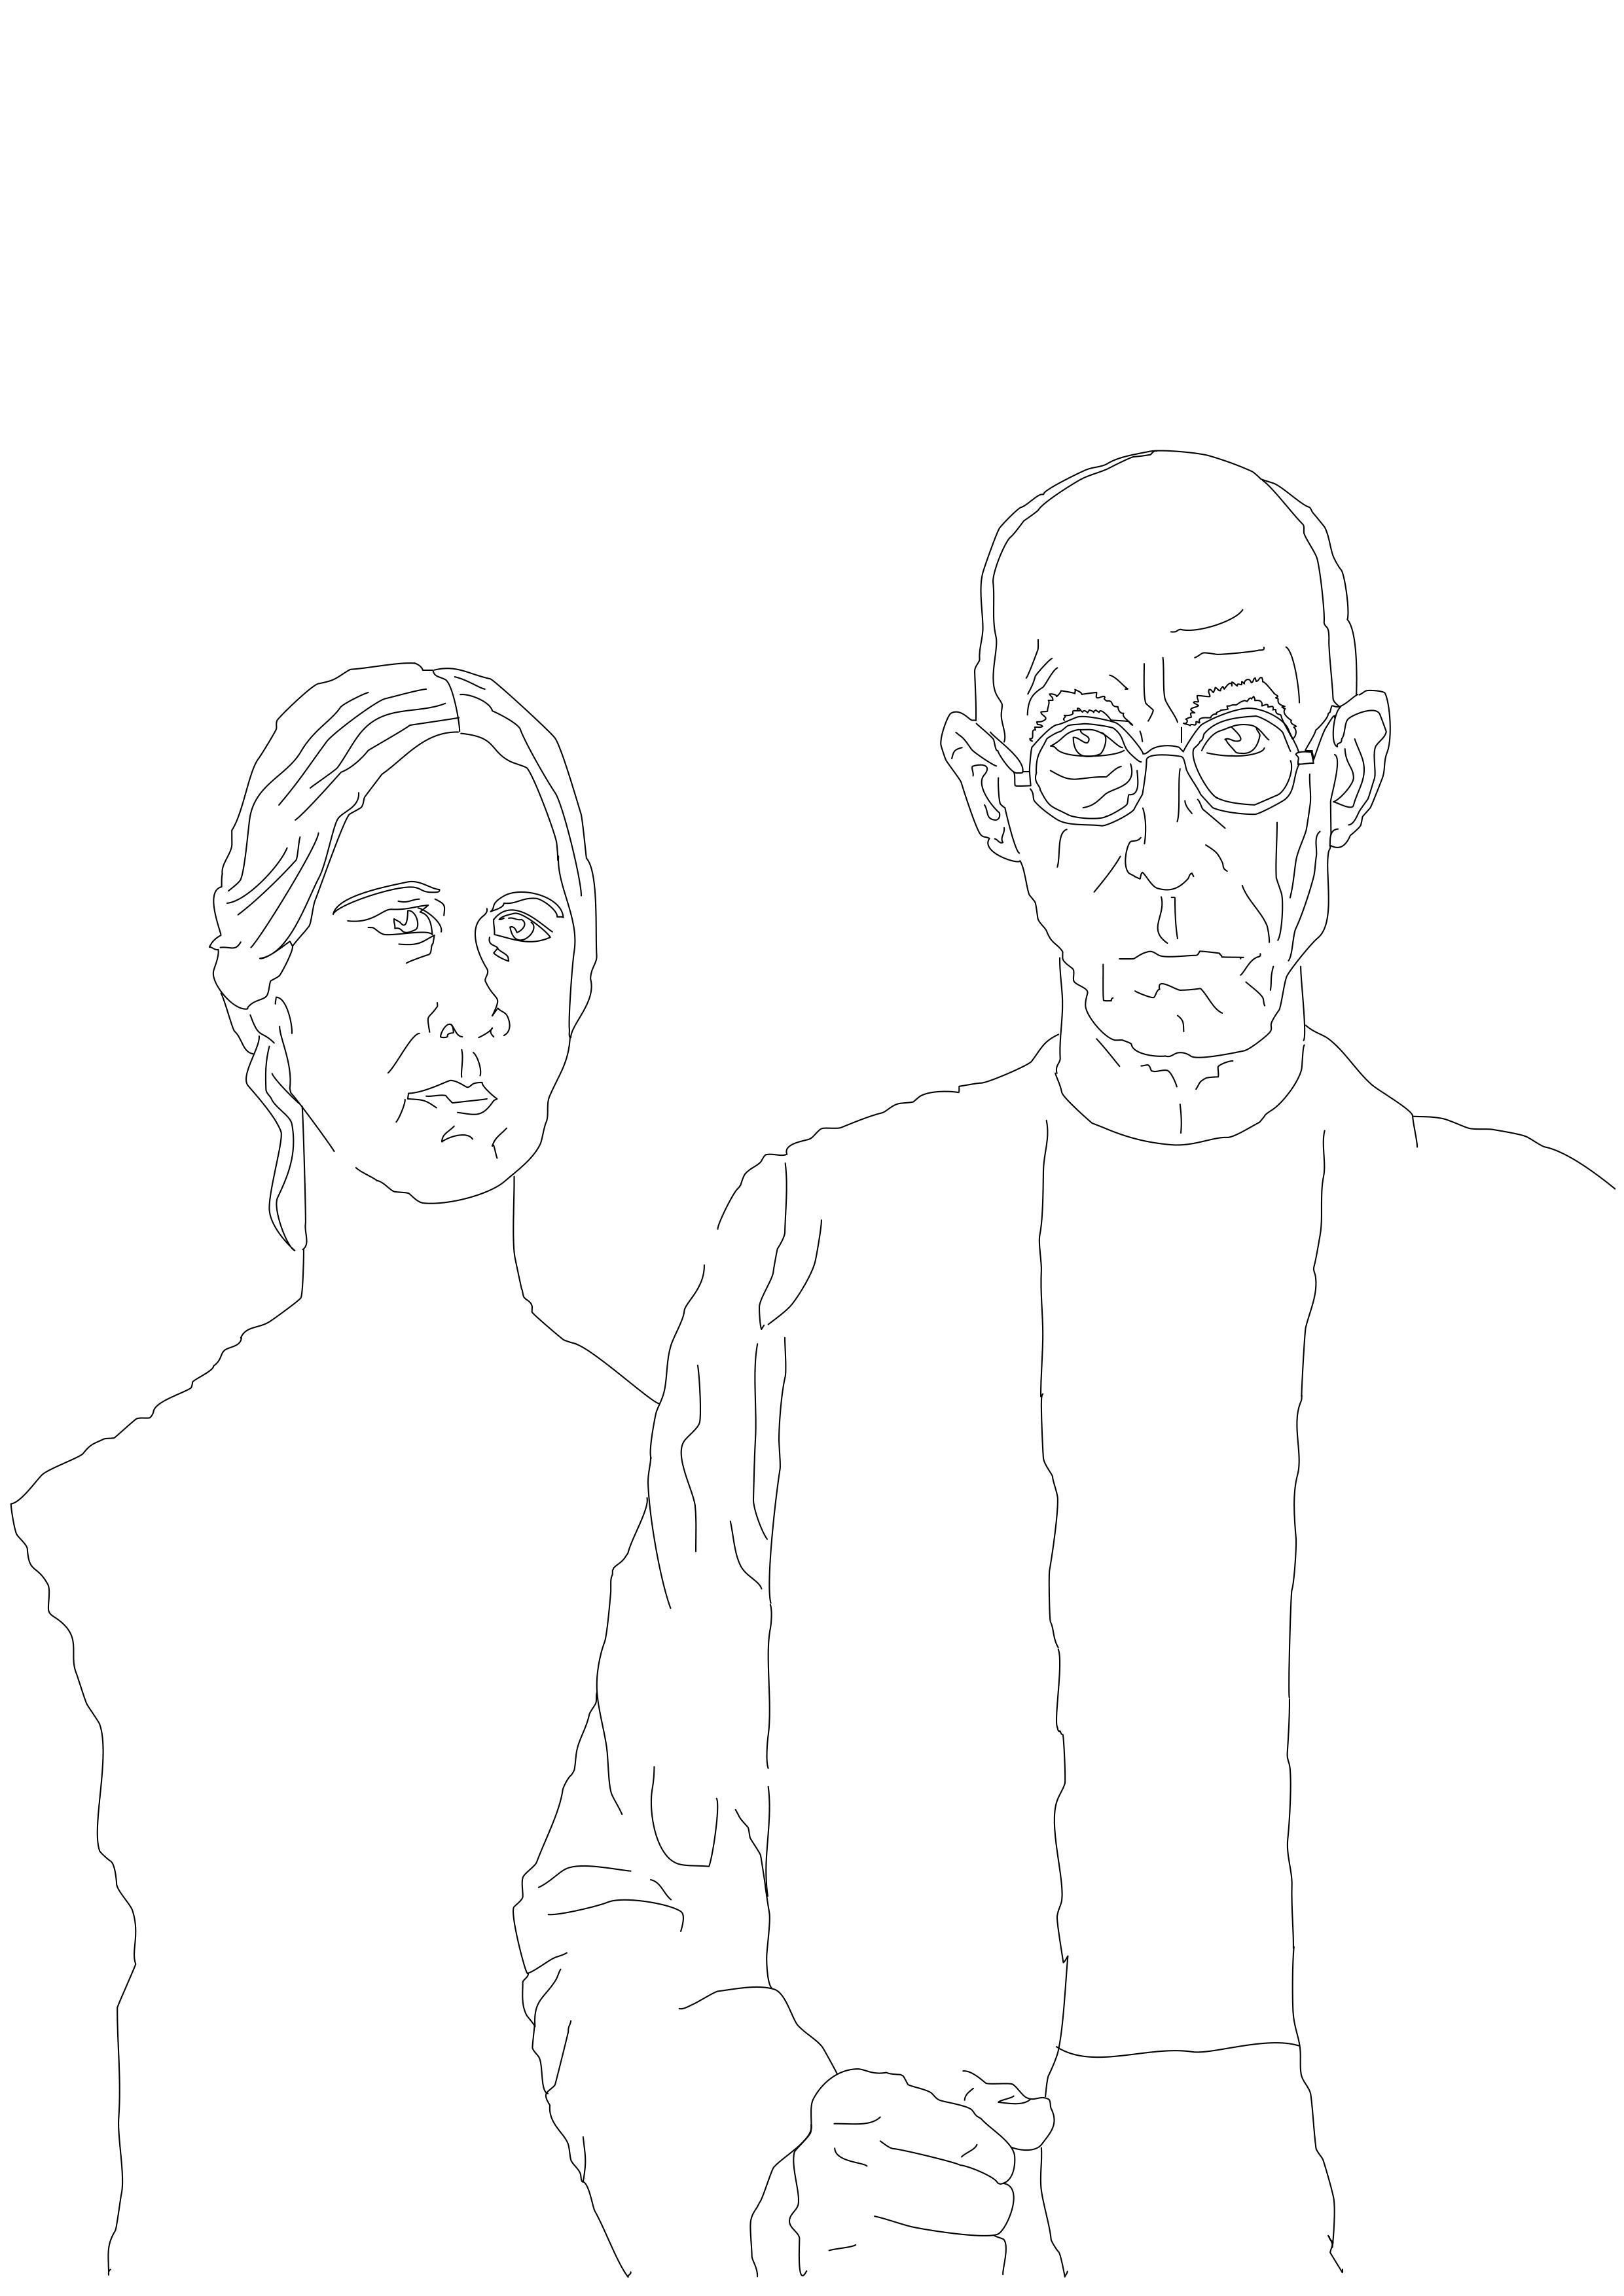 Simple American Gothic Outline Used As A Starting Point